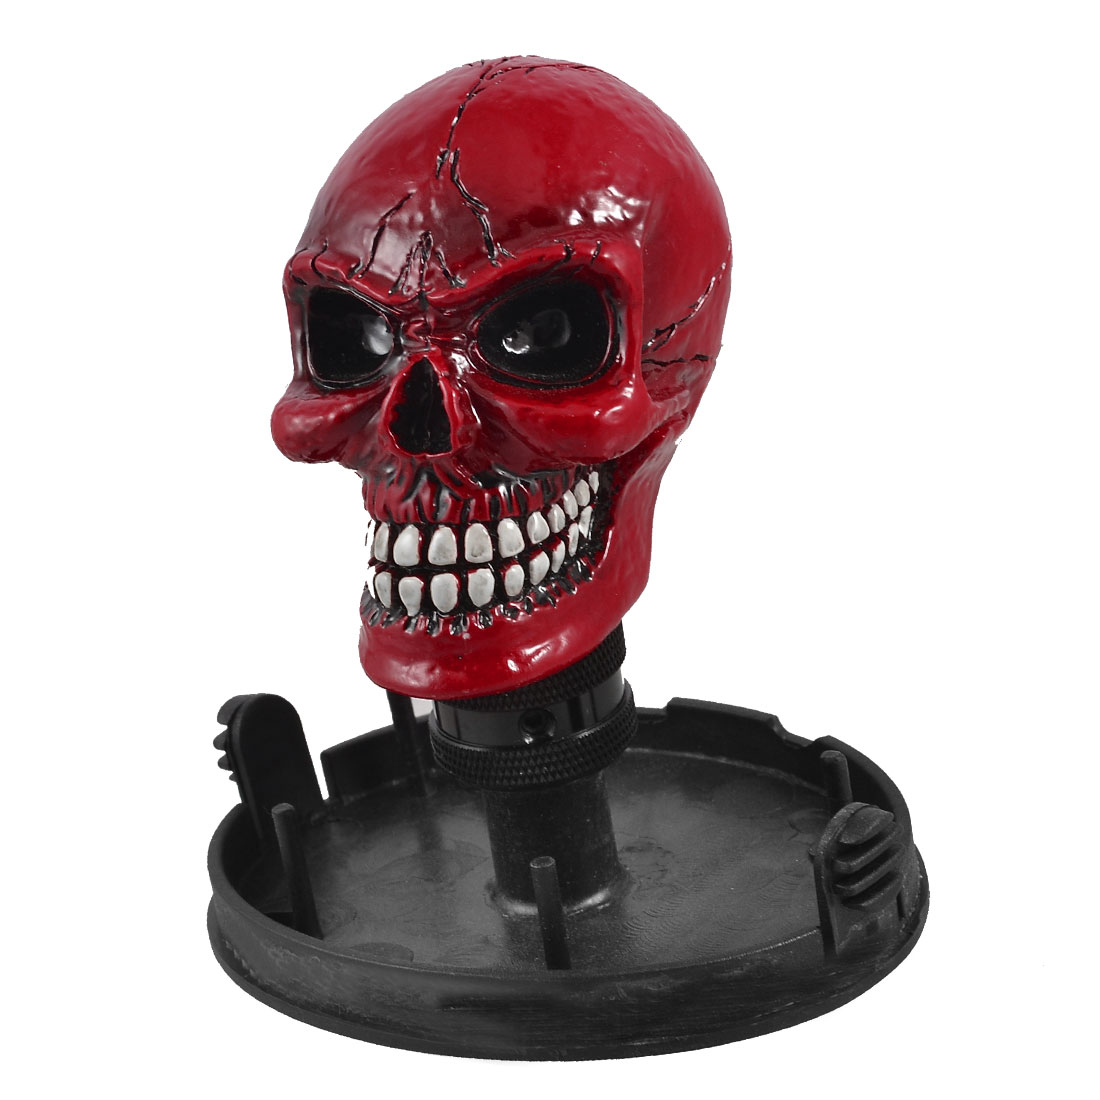 Car Vehicle Decoration Red Skull Head Design Gear Shift Knob